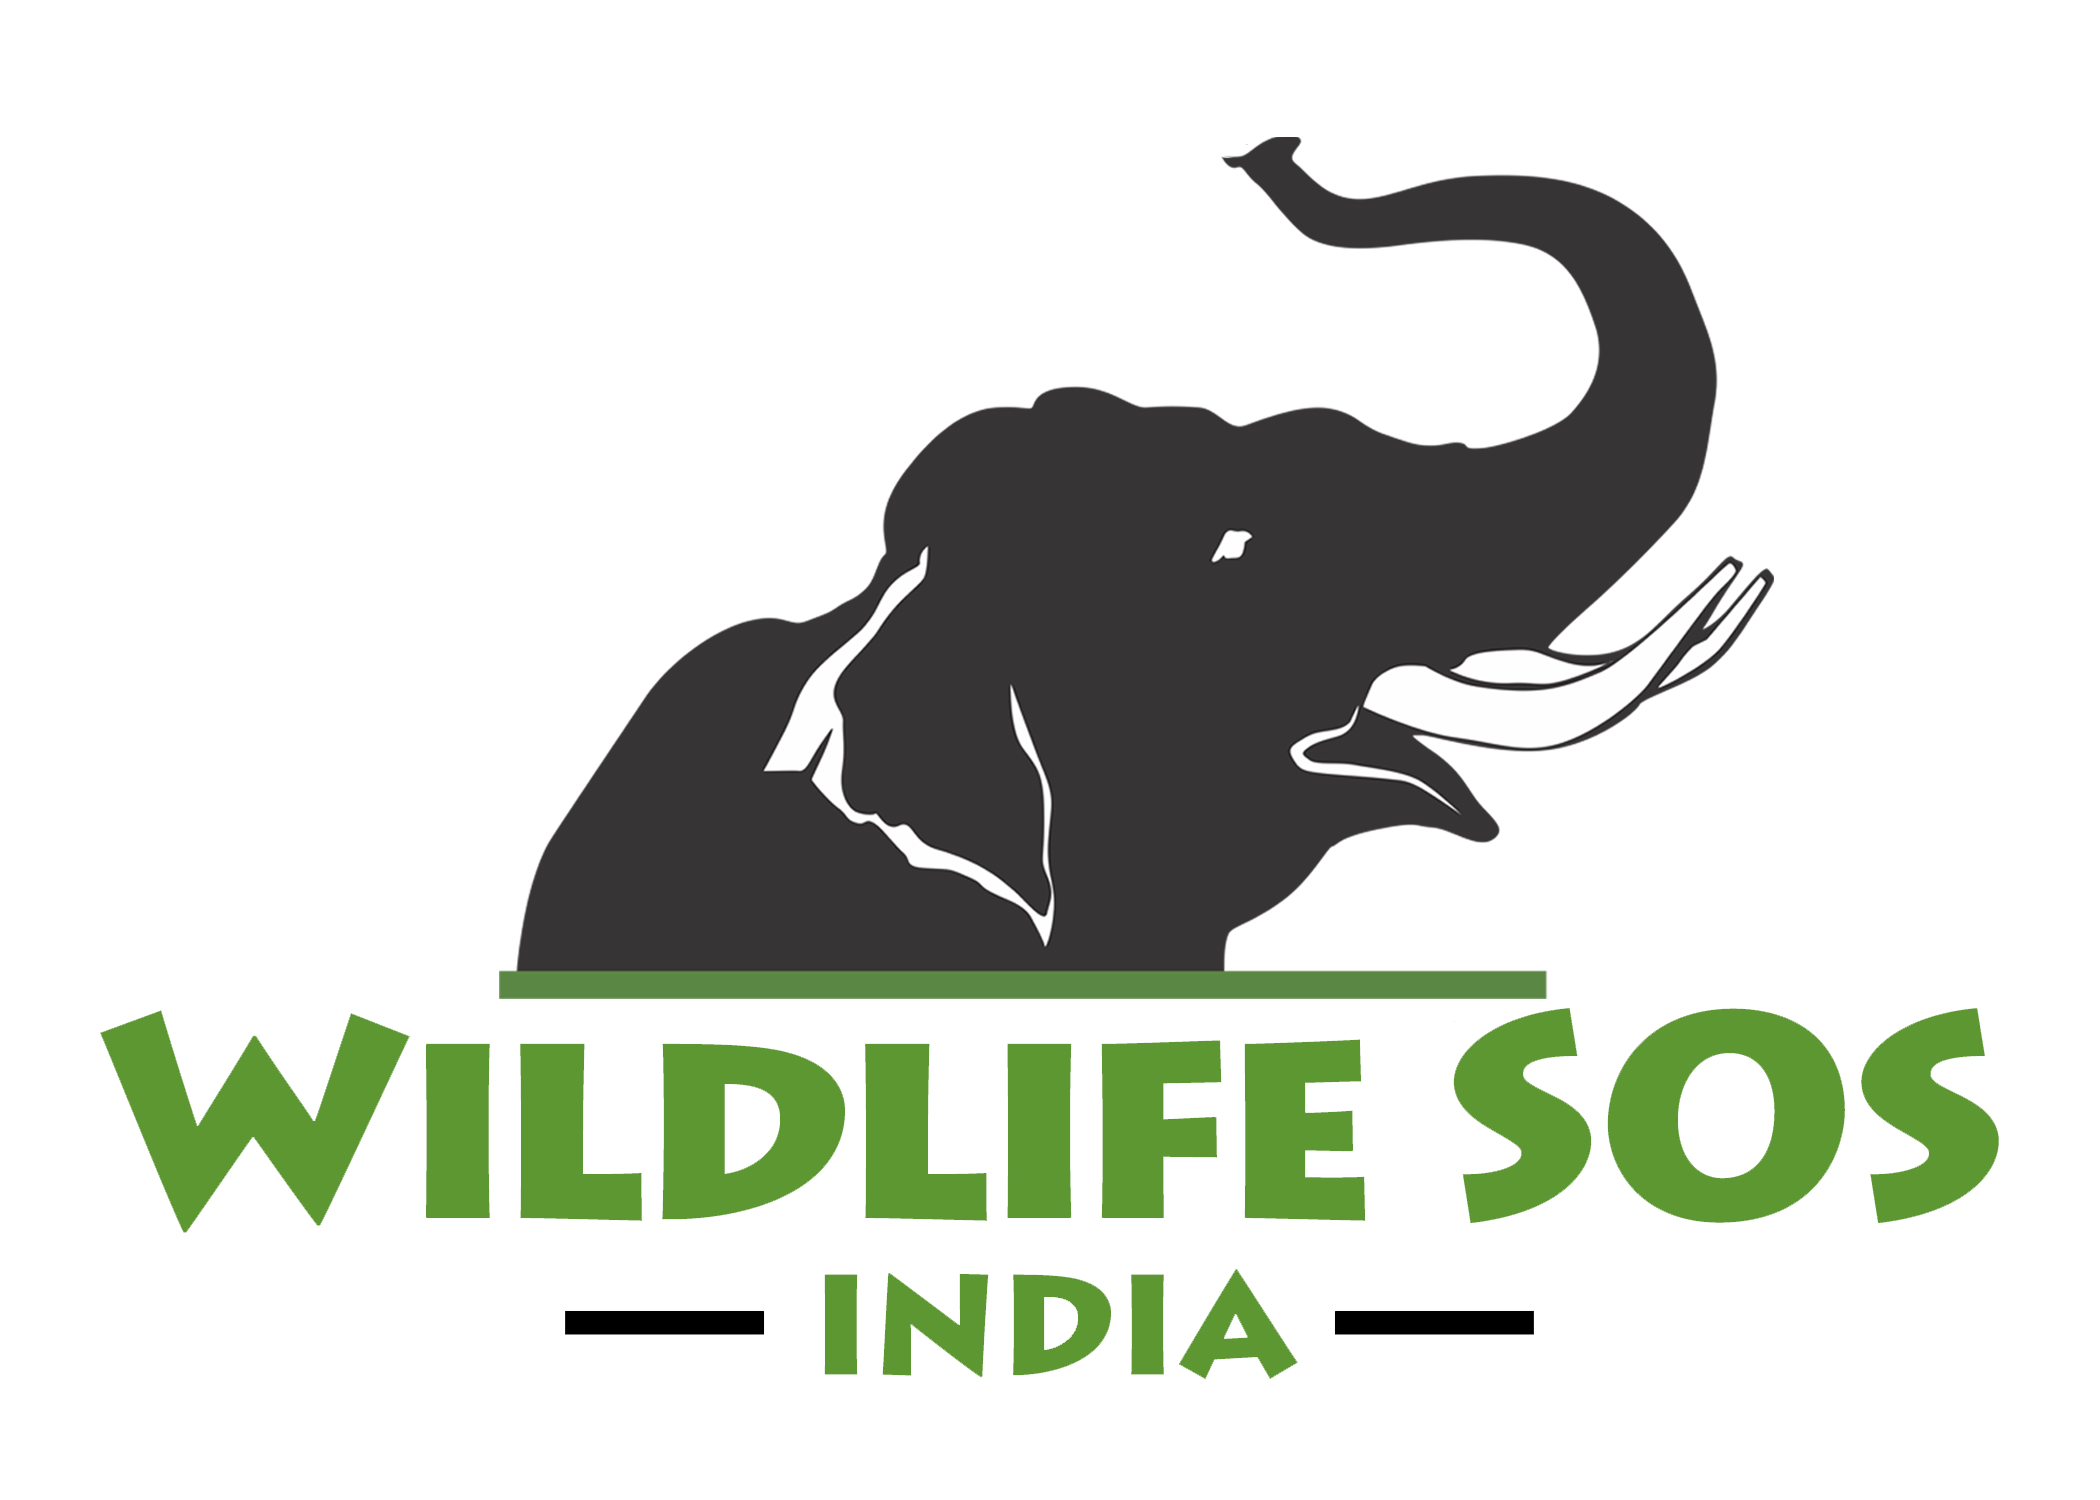 Wildlife SOS India